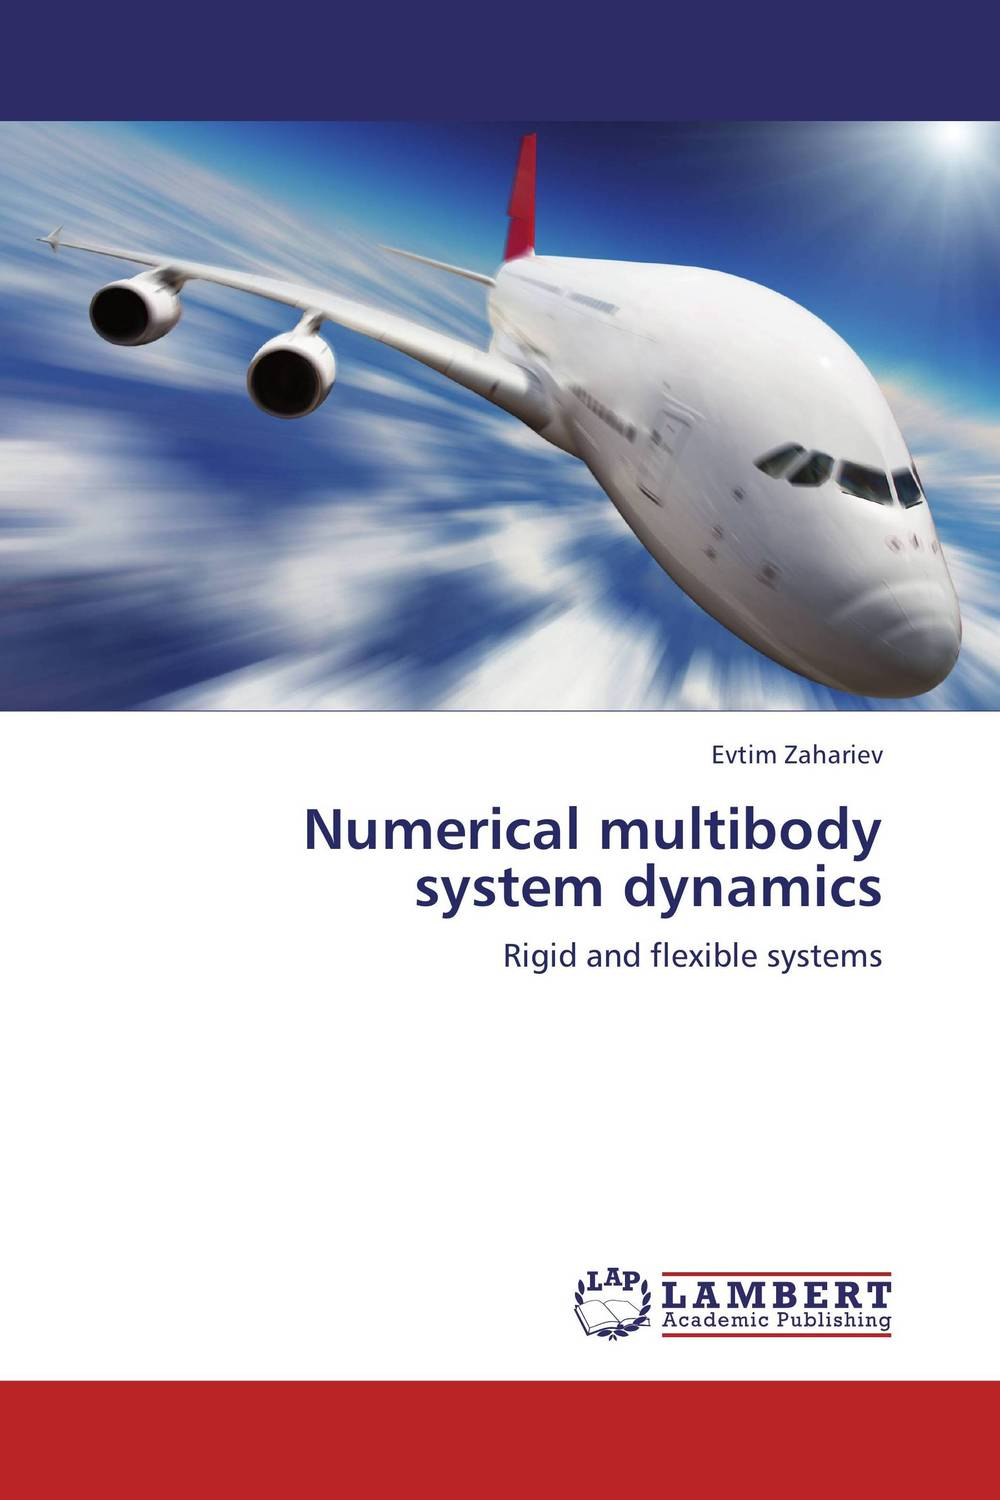 Numerical multibody system dynamics